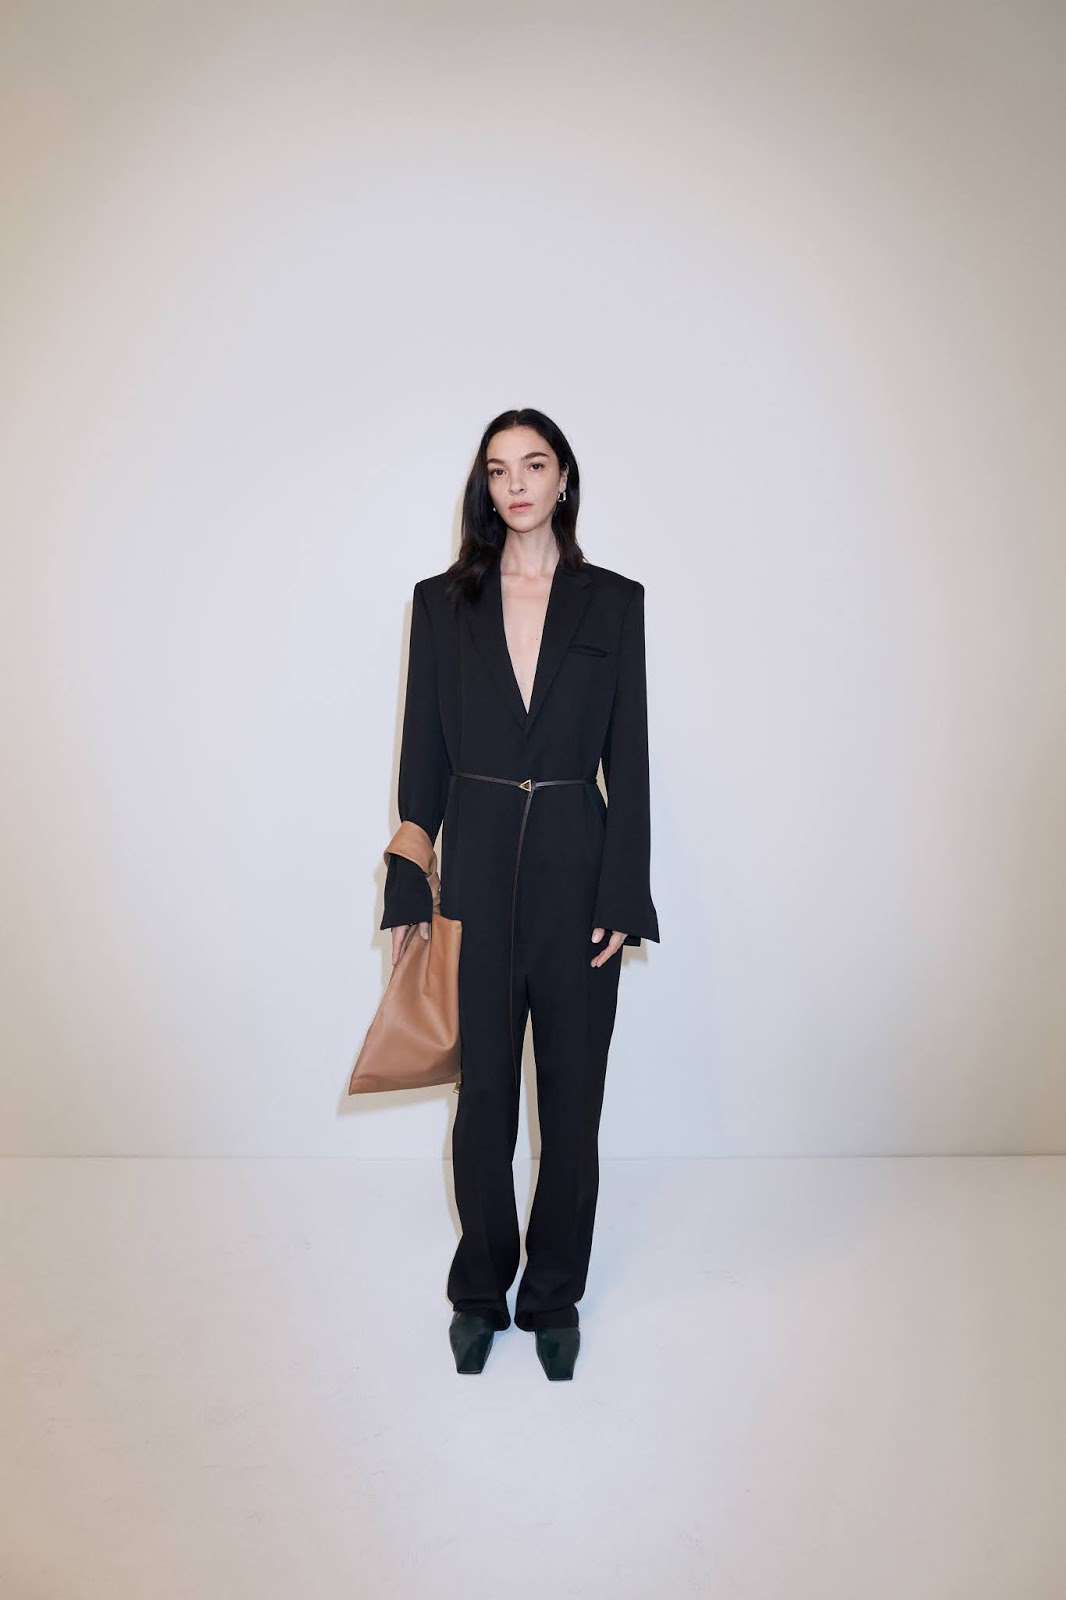 Bottega Veneta Resort 2020 | Allegory of Vanity